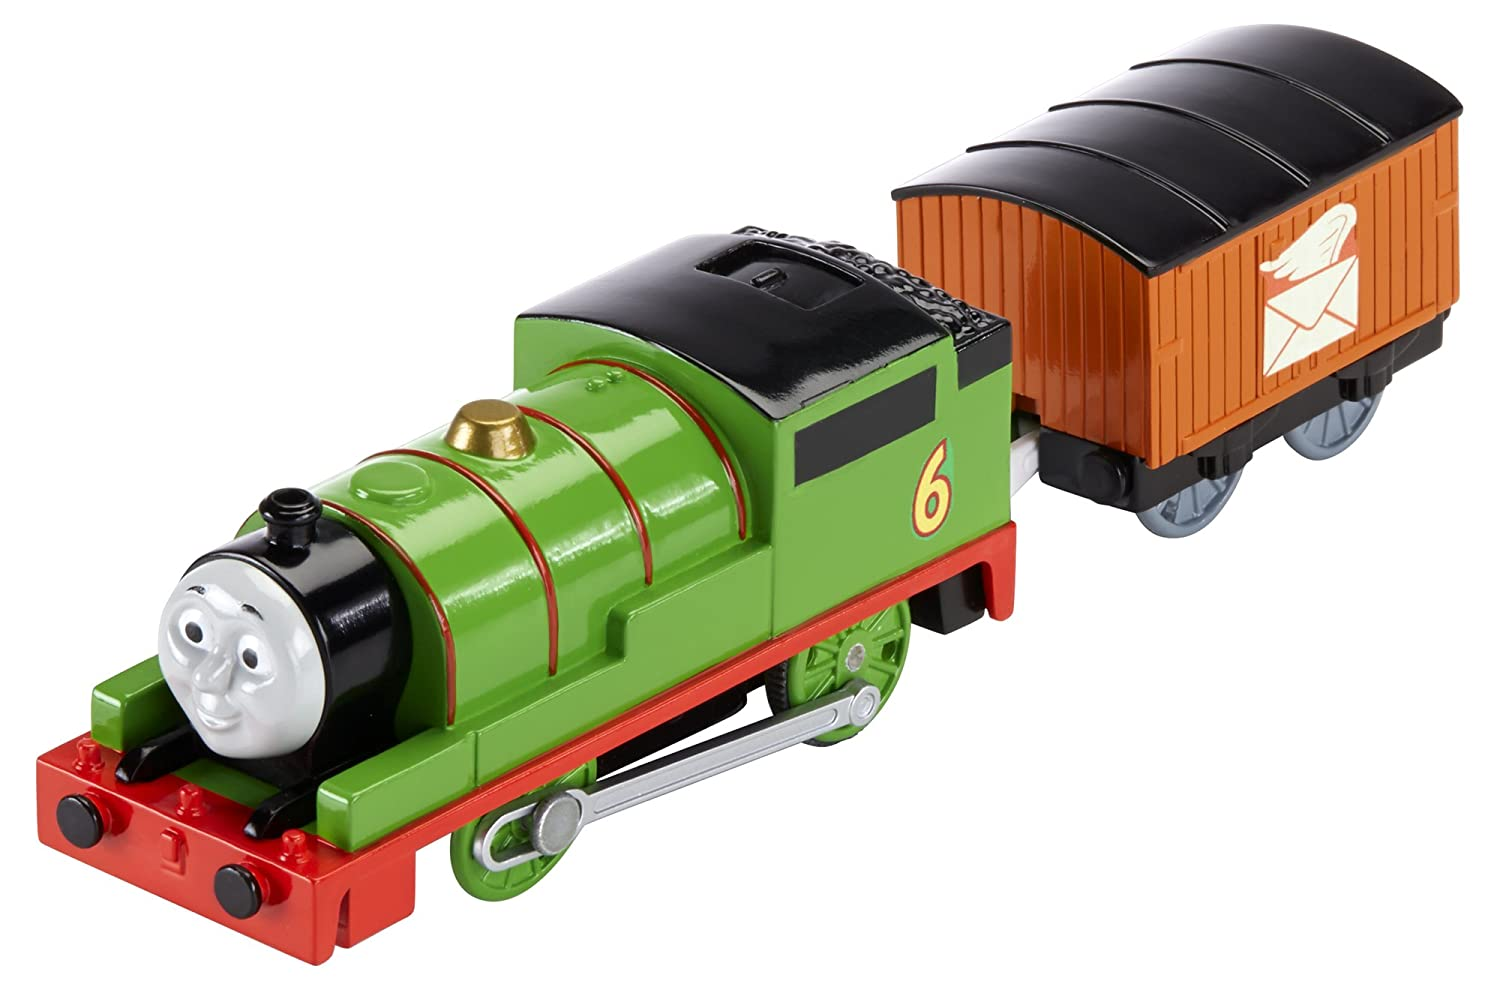 Thomas Friends Fisher Price Trackmaster Motorized Lionel Trains Supero Remote Control Switches No 112 Percy Engine Toys Games